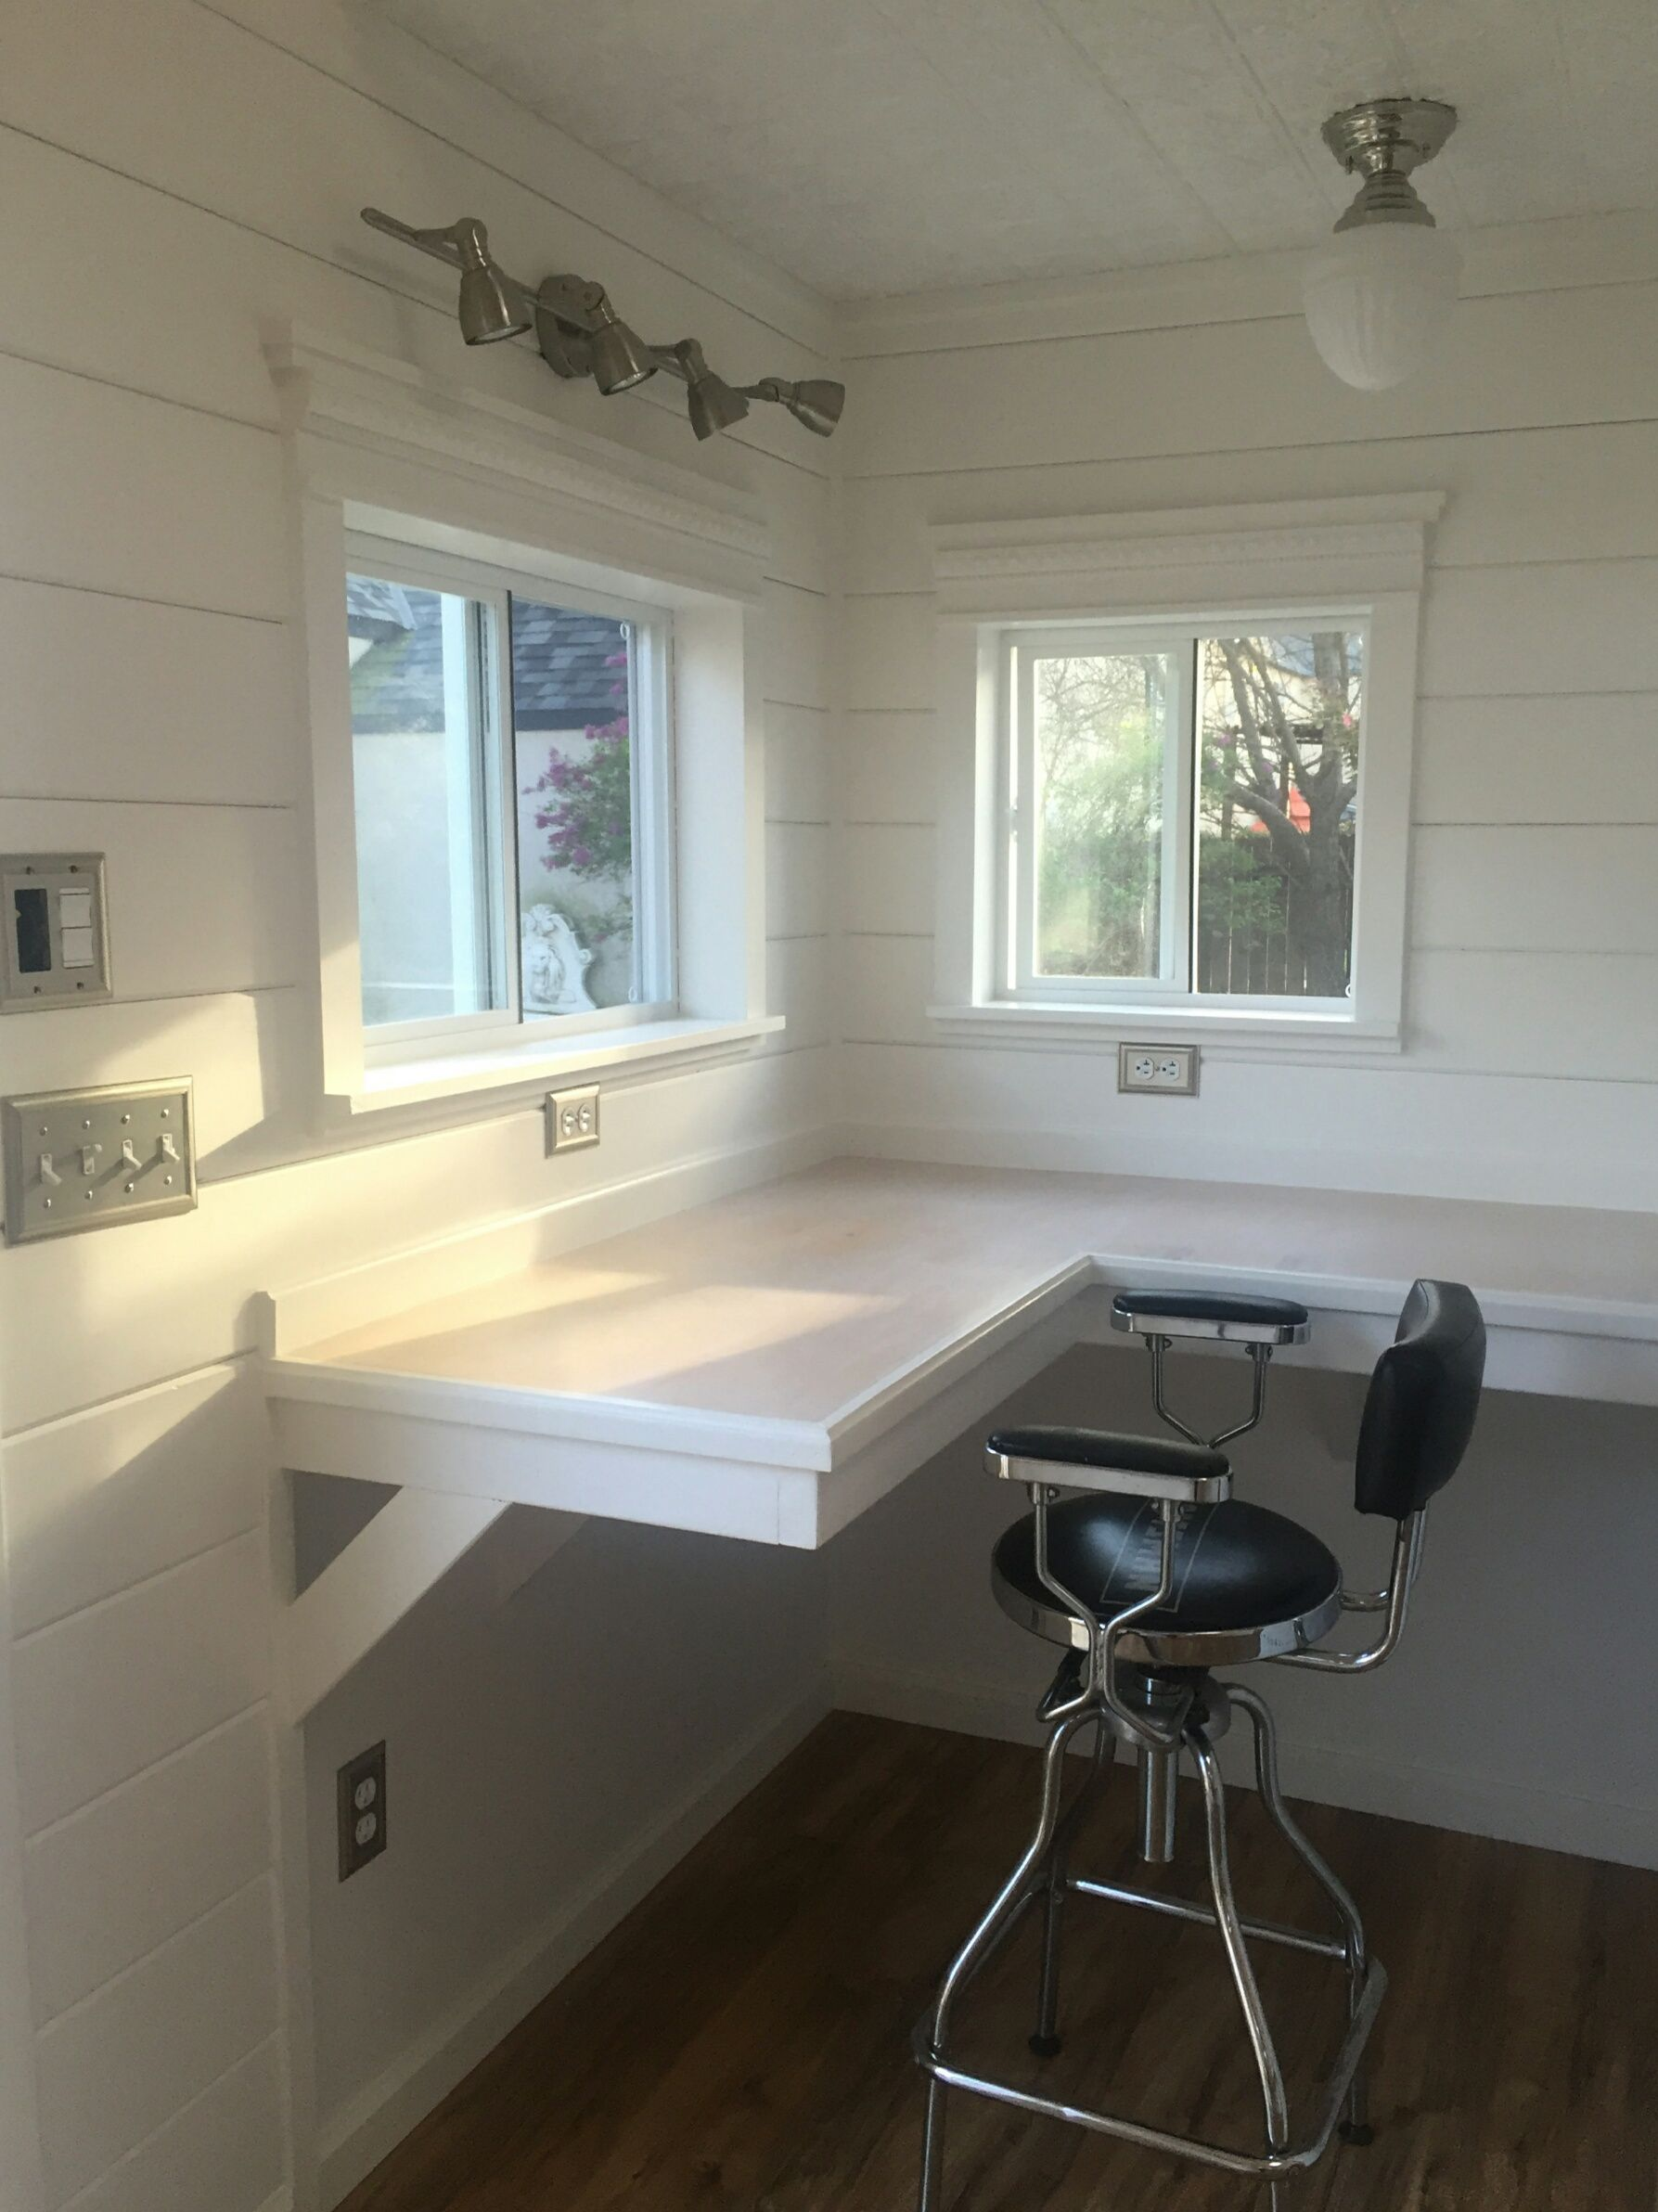 Home Design Business Ideas: Need Some Home Office Inspiration? This Tuff Shed Office